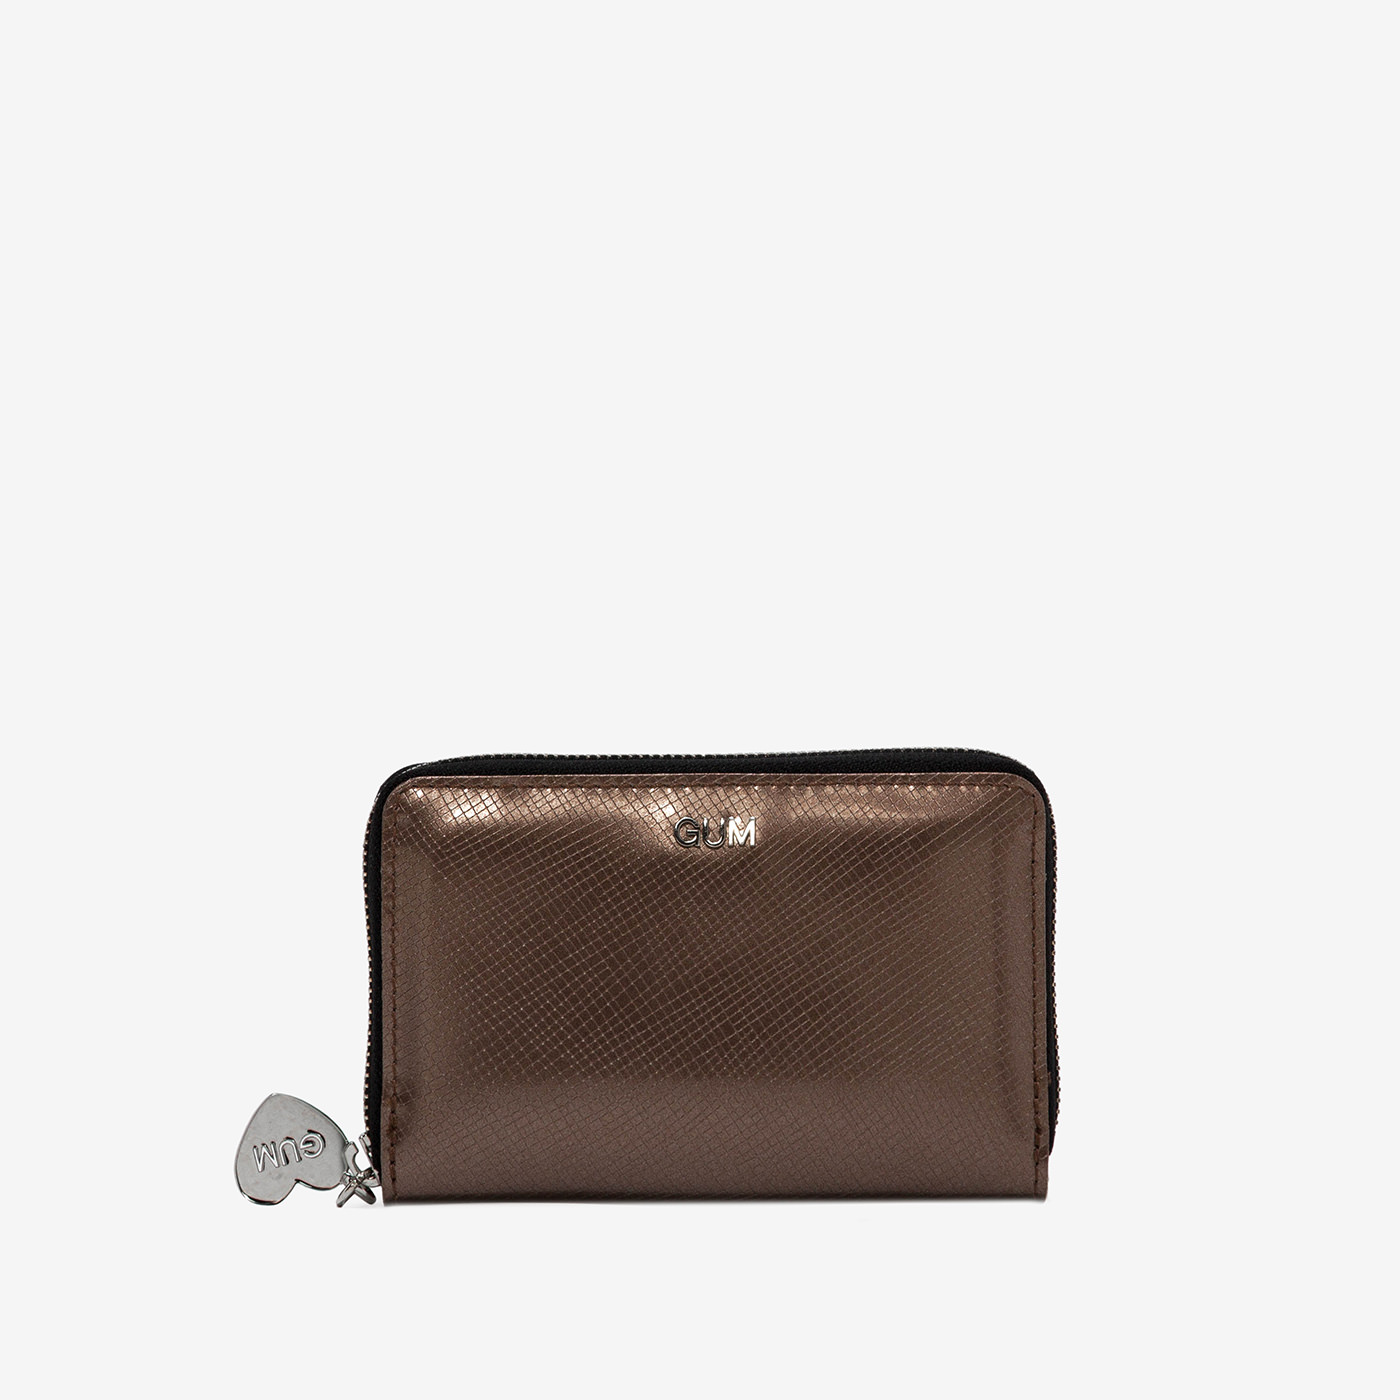 GUM: ESSENTIAL LM MEDIUM SIZE WALLET